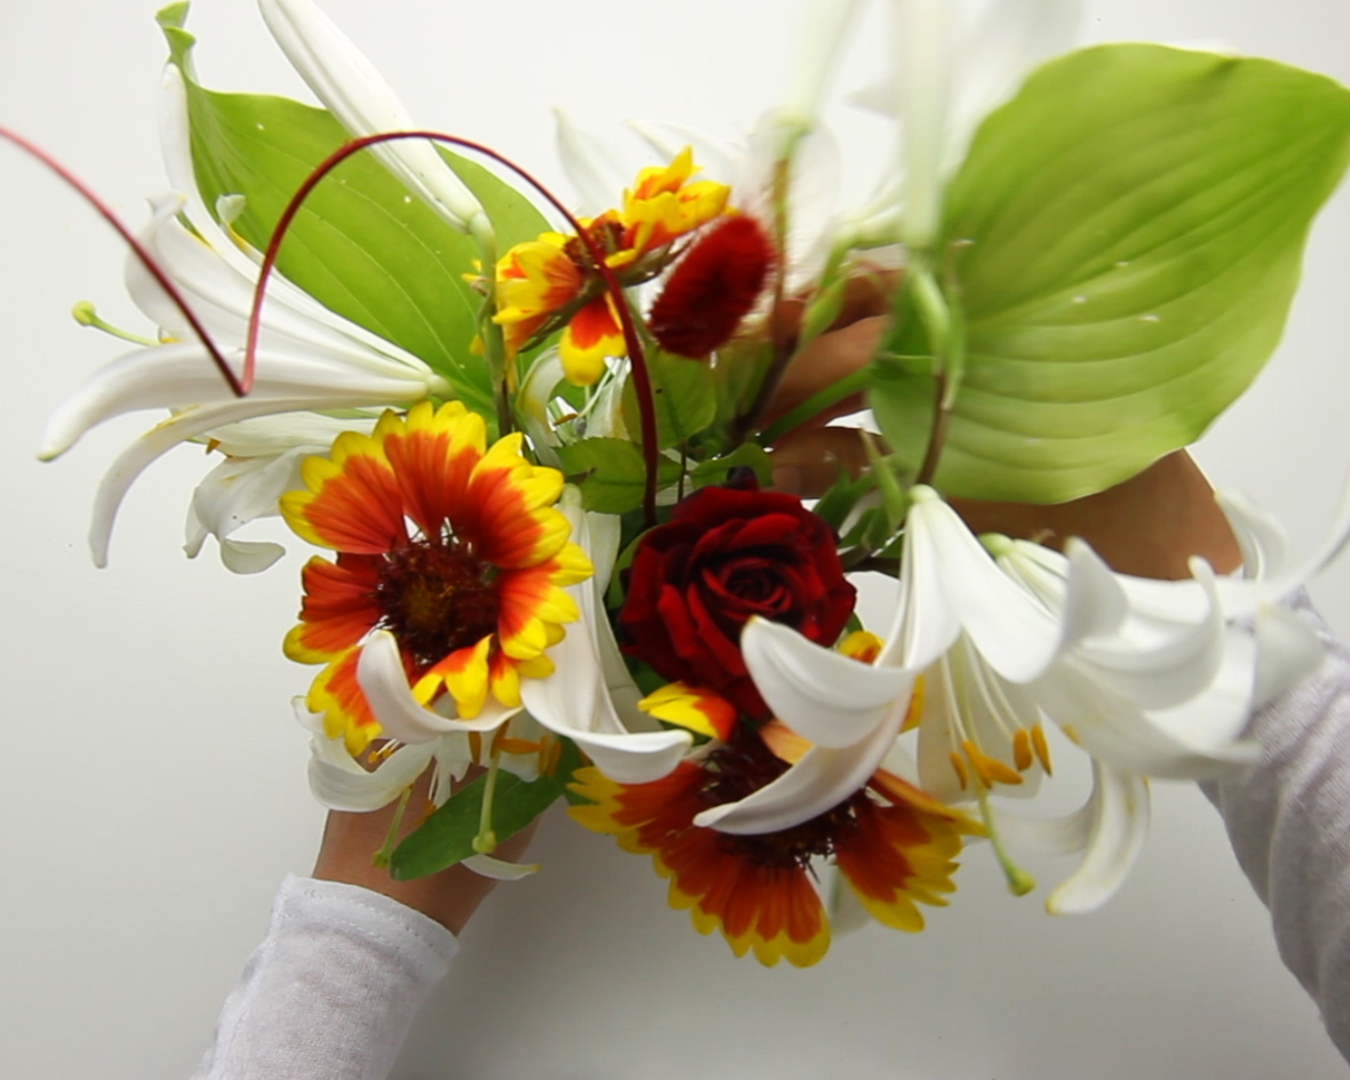 How to Arrange Flowers 14 Steps with Pictures  wikiHow